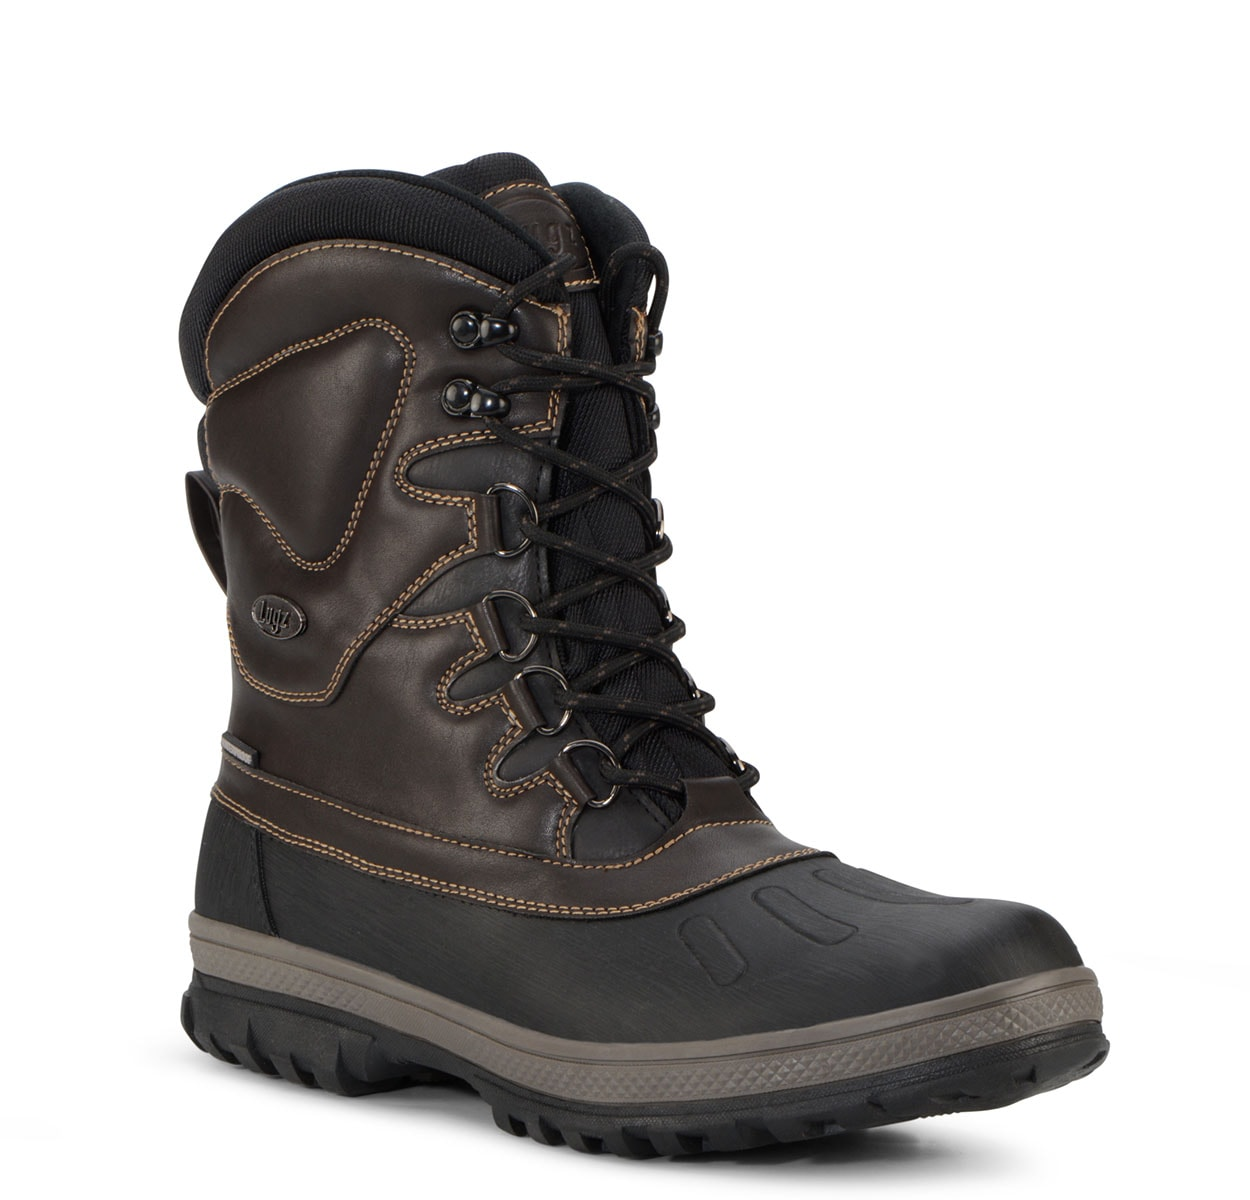 Men's Anorak 8-Inch Waterproof Boot (Choose Your Color: CAROB/OTTER/BLACK, Choose Your Size: 11.5)